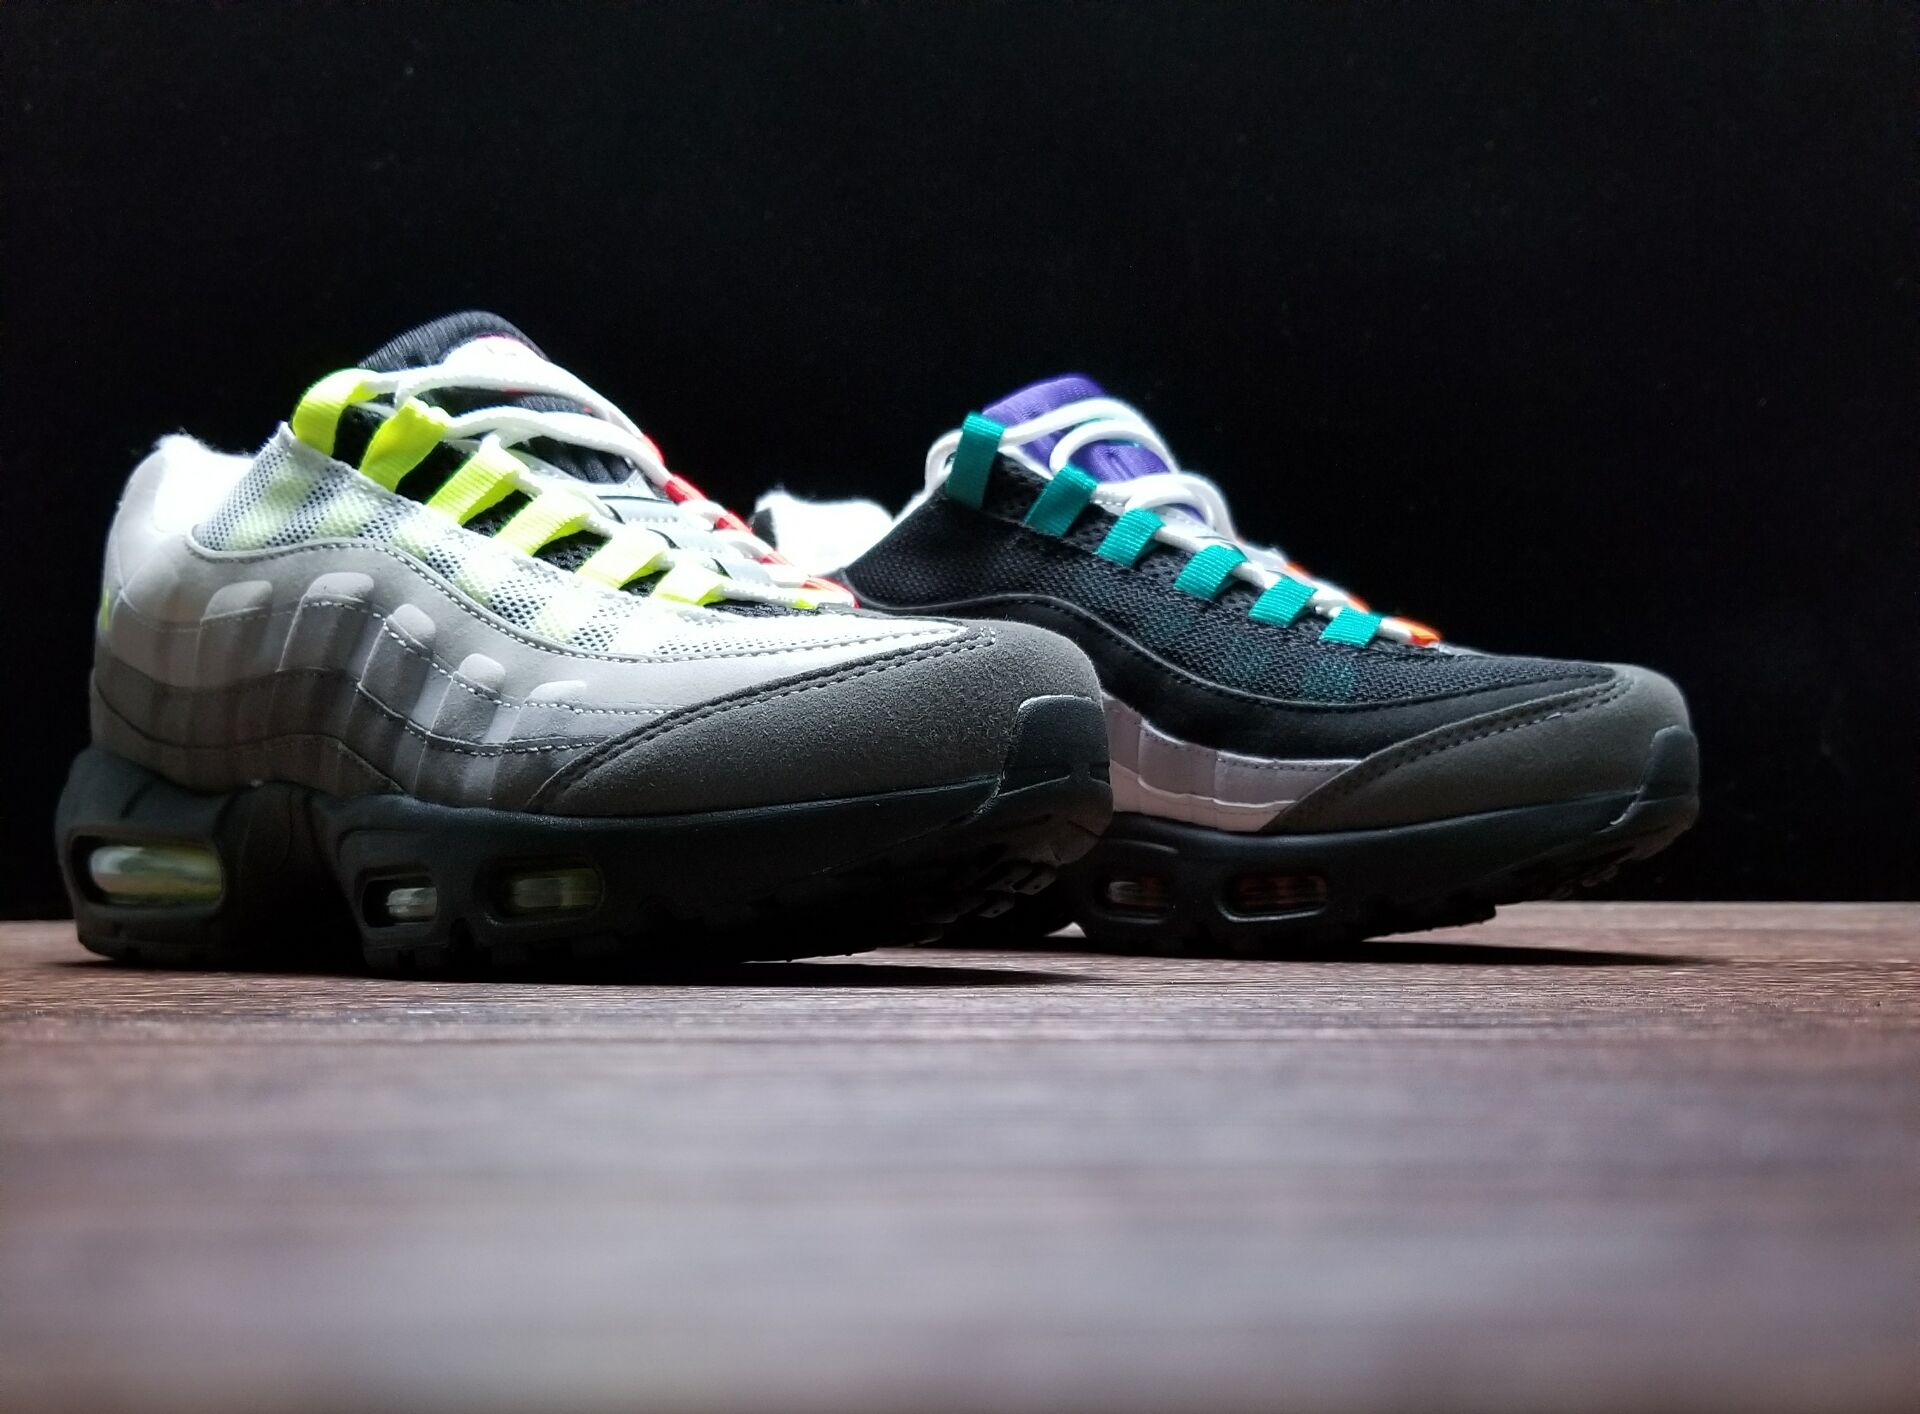 classic fit dd58f 36f58 Nike Air Max 95 'Greedy' Black/Safety Orange/Volt Outlet